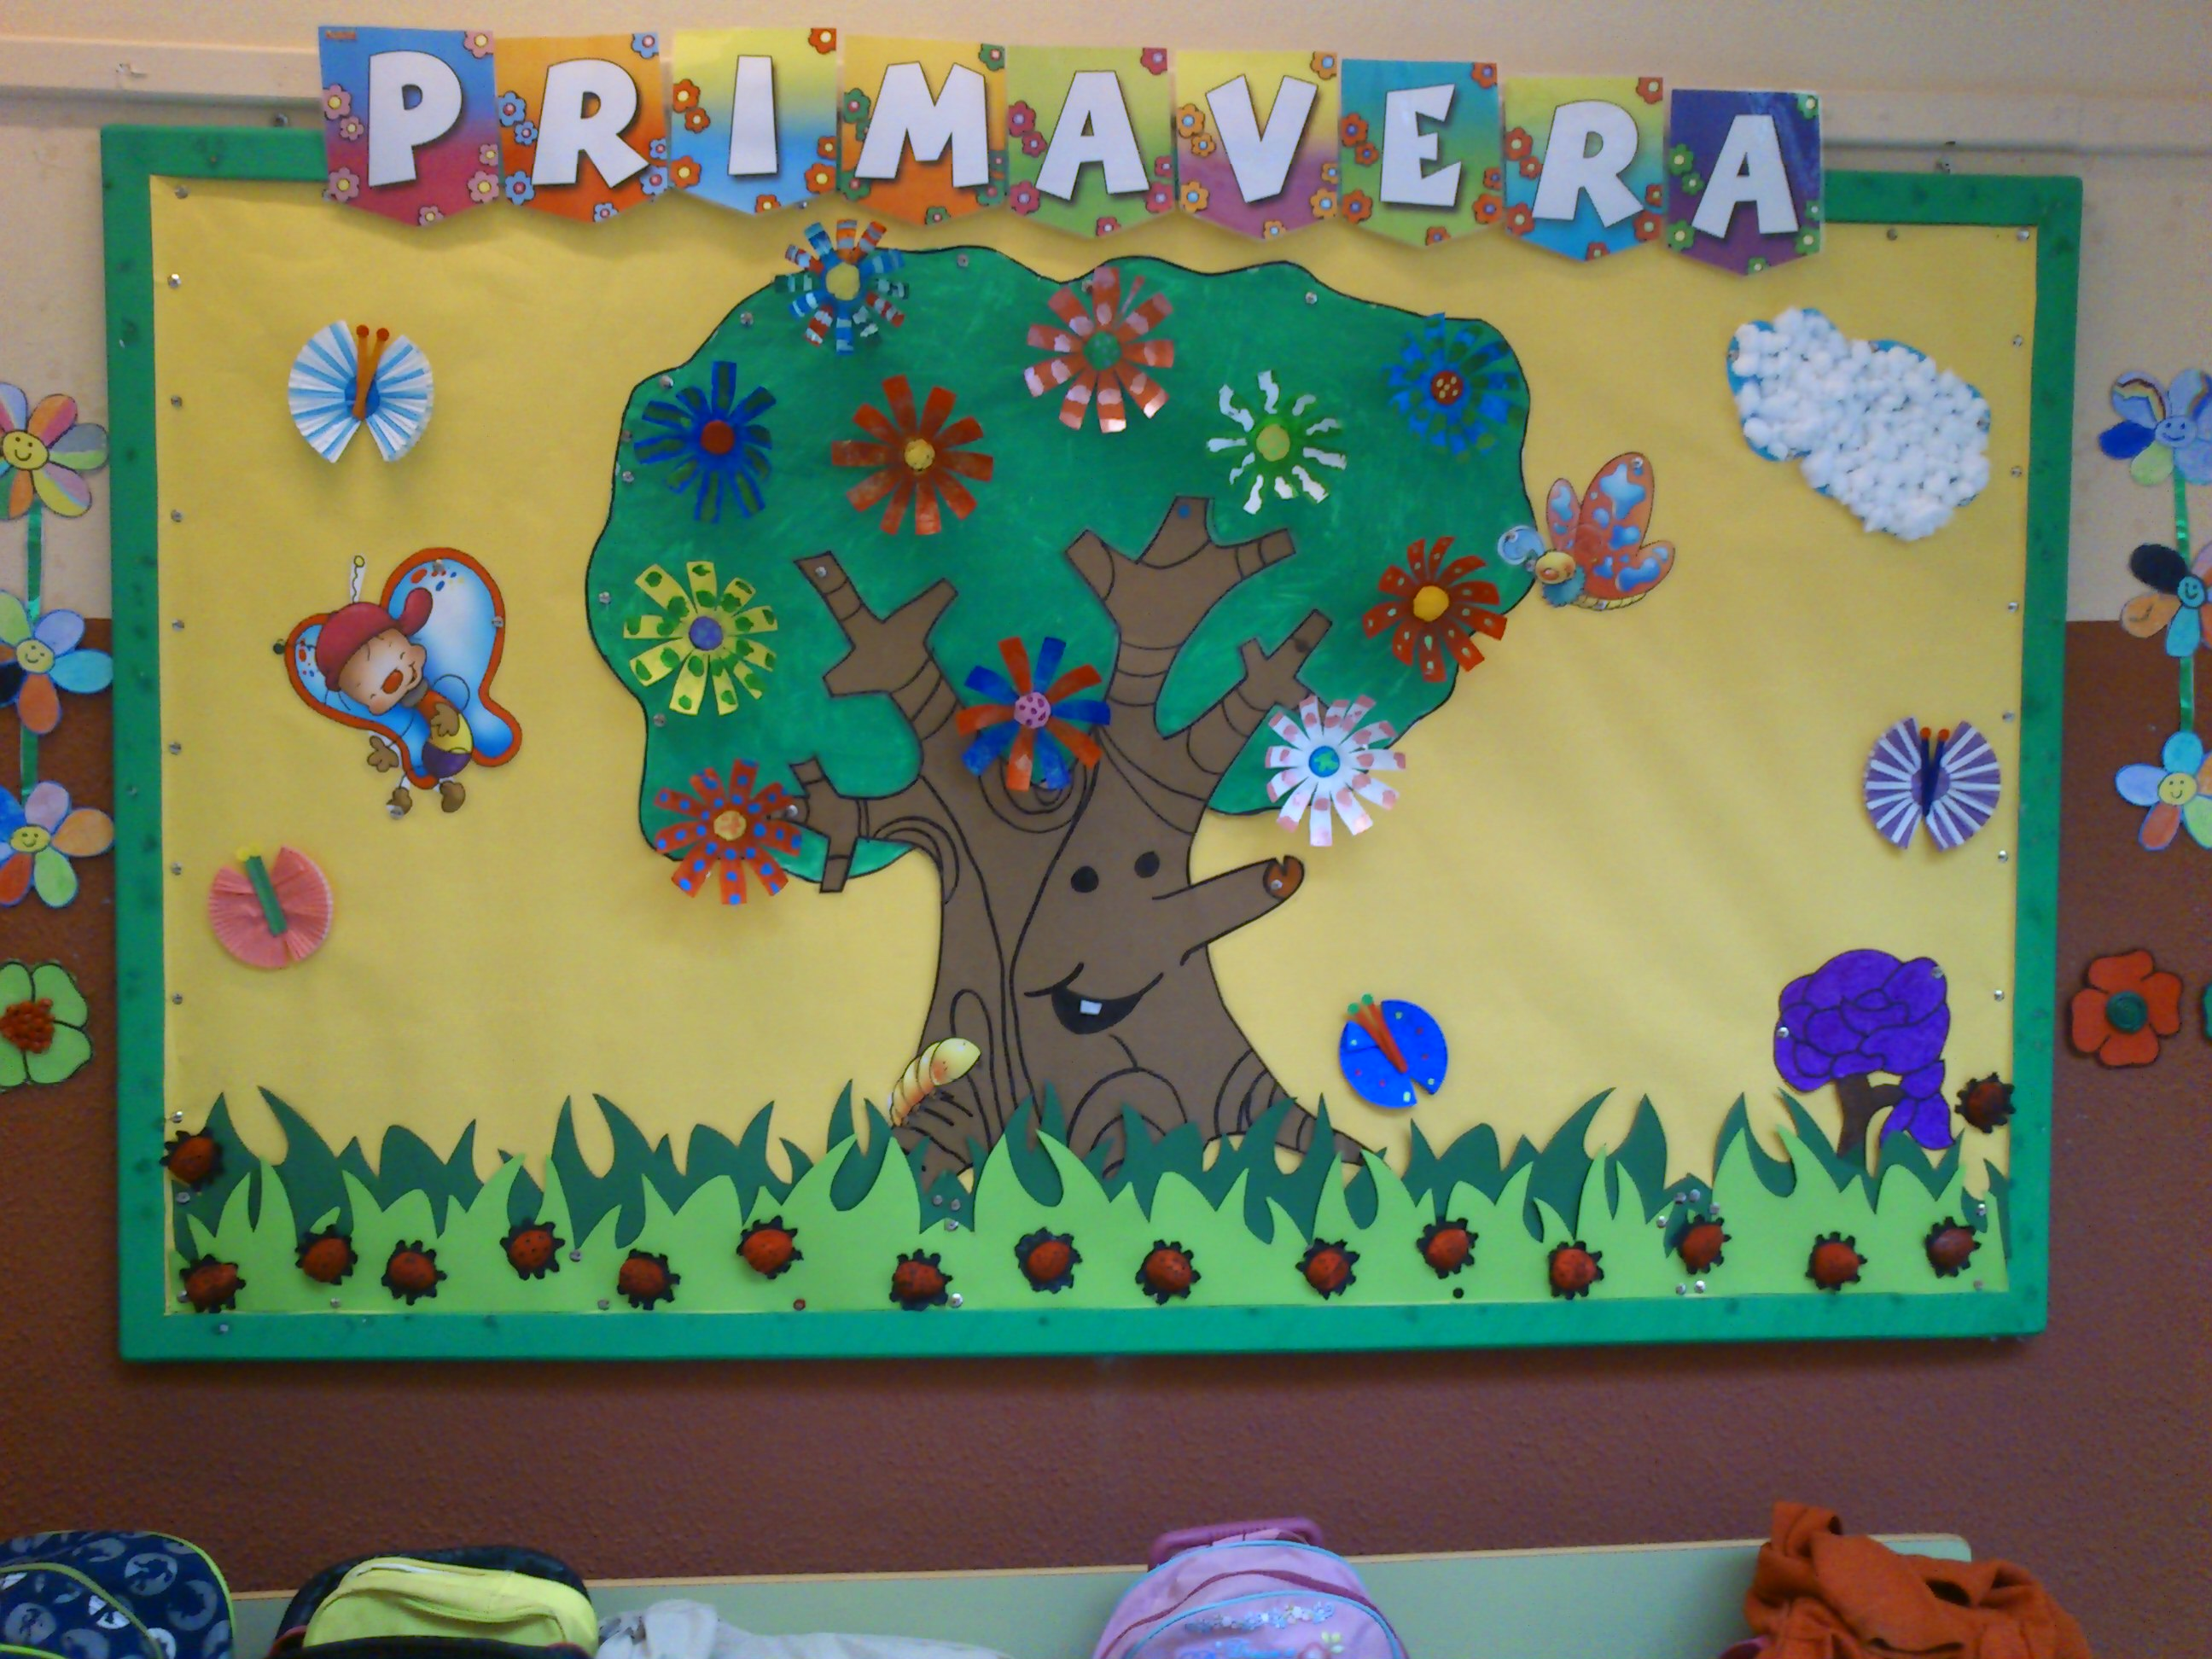 Murales primavera 13 imagenes educativas for Comprar murales para pared